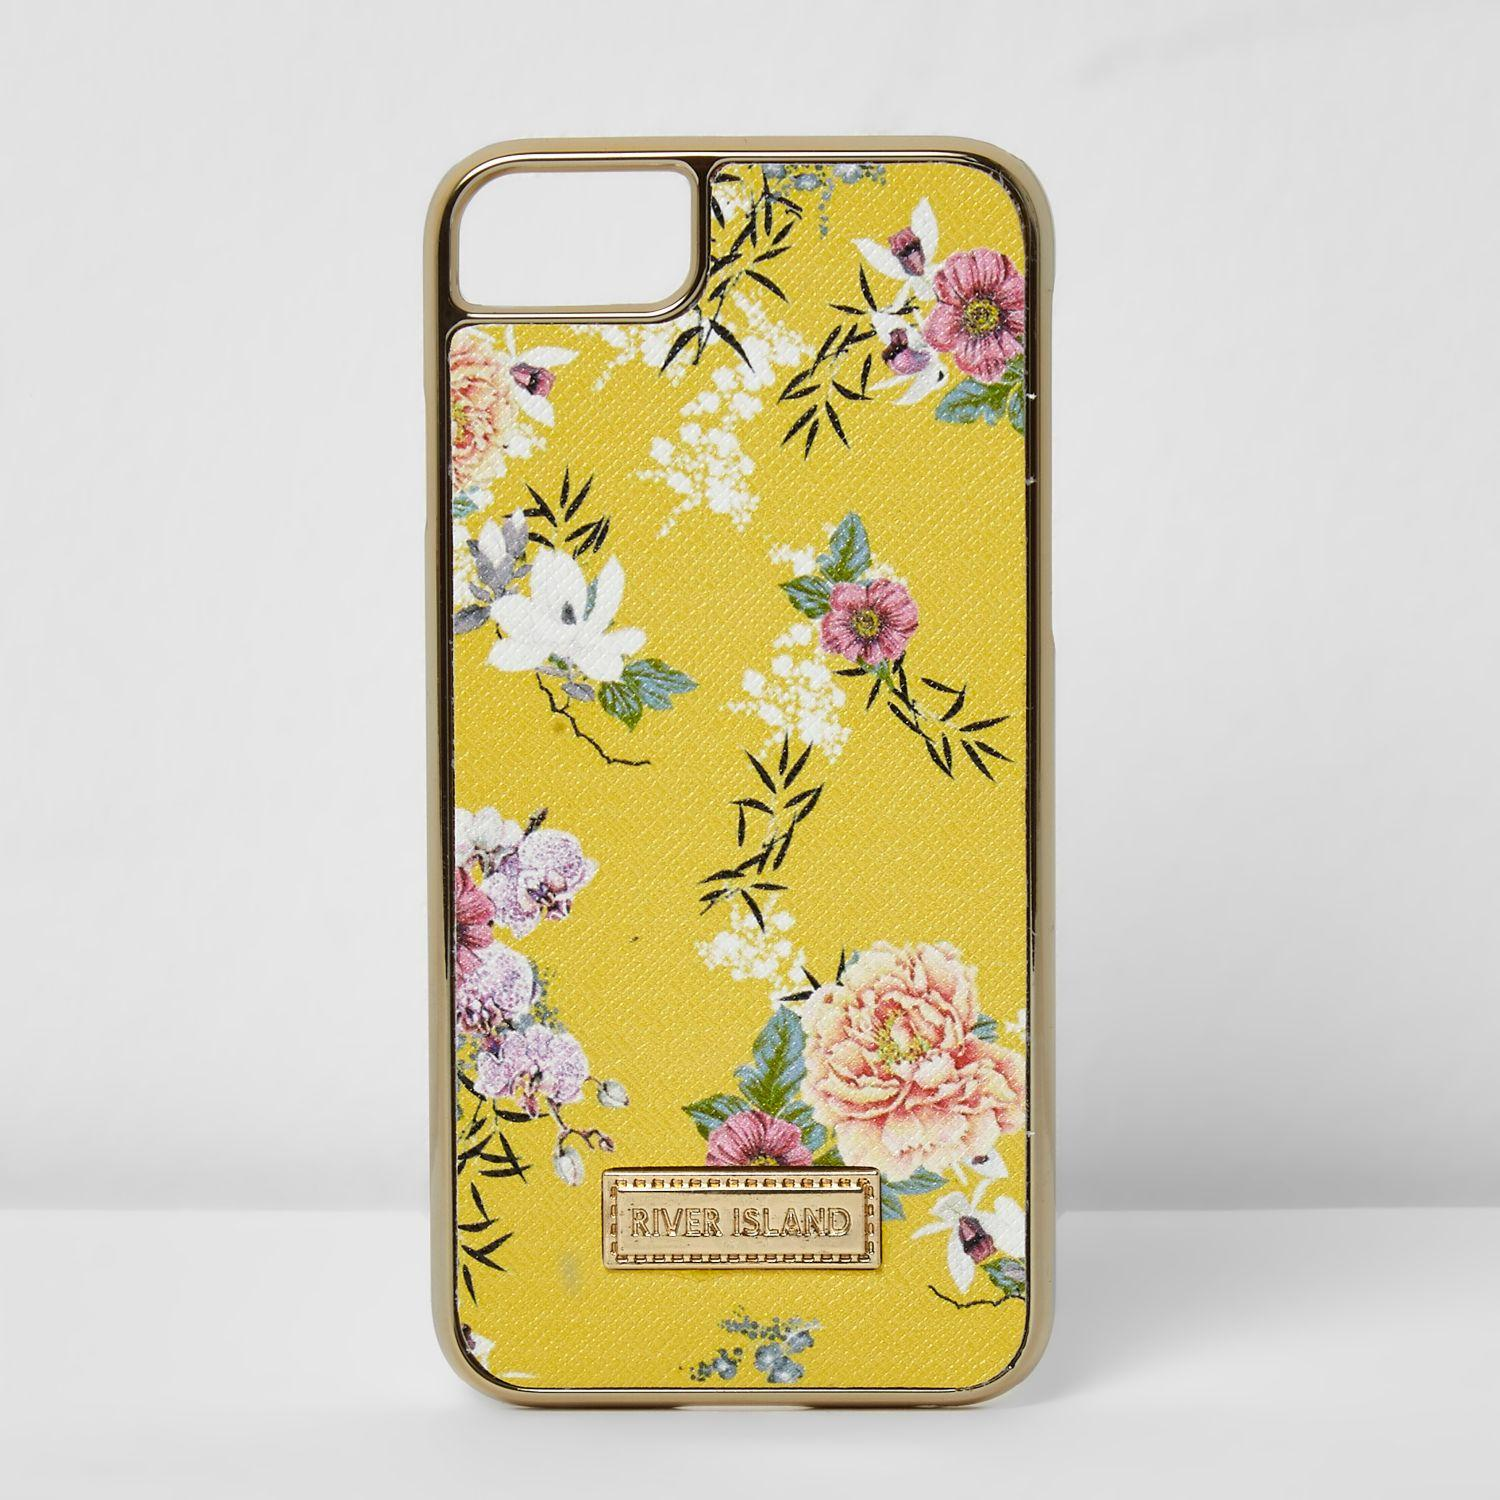 Lyst - River Island Yellow Floral Iphone 6 7 Case in Yellow abb7930b8